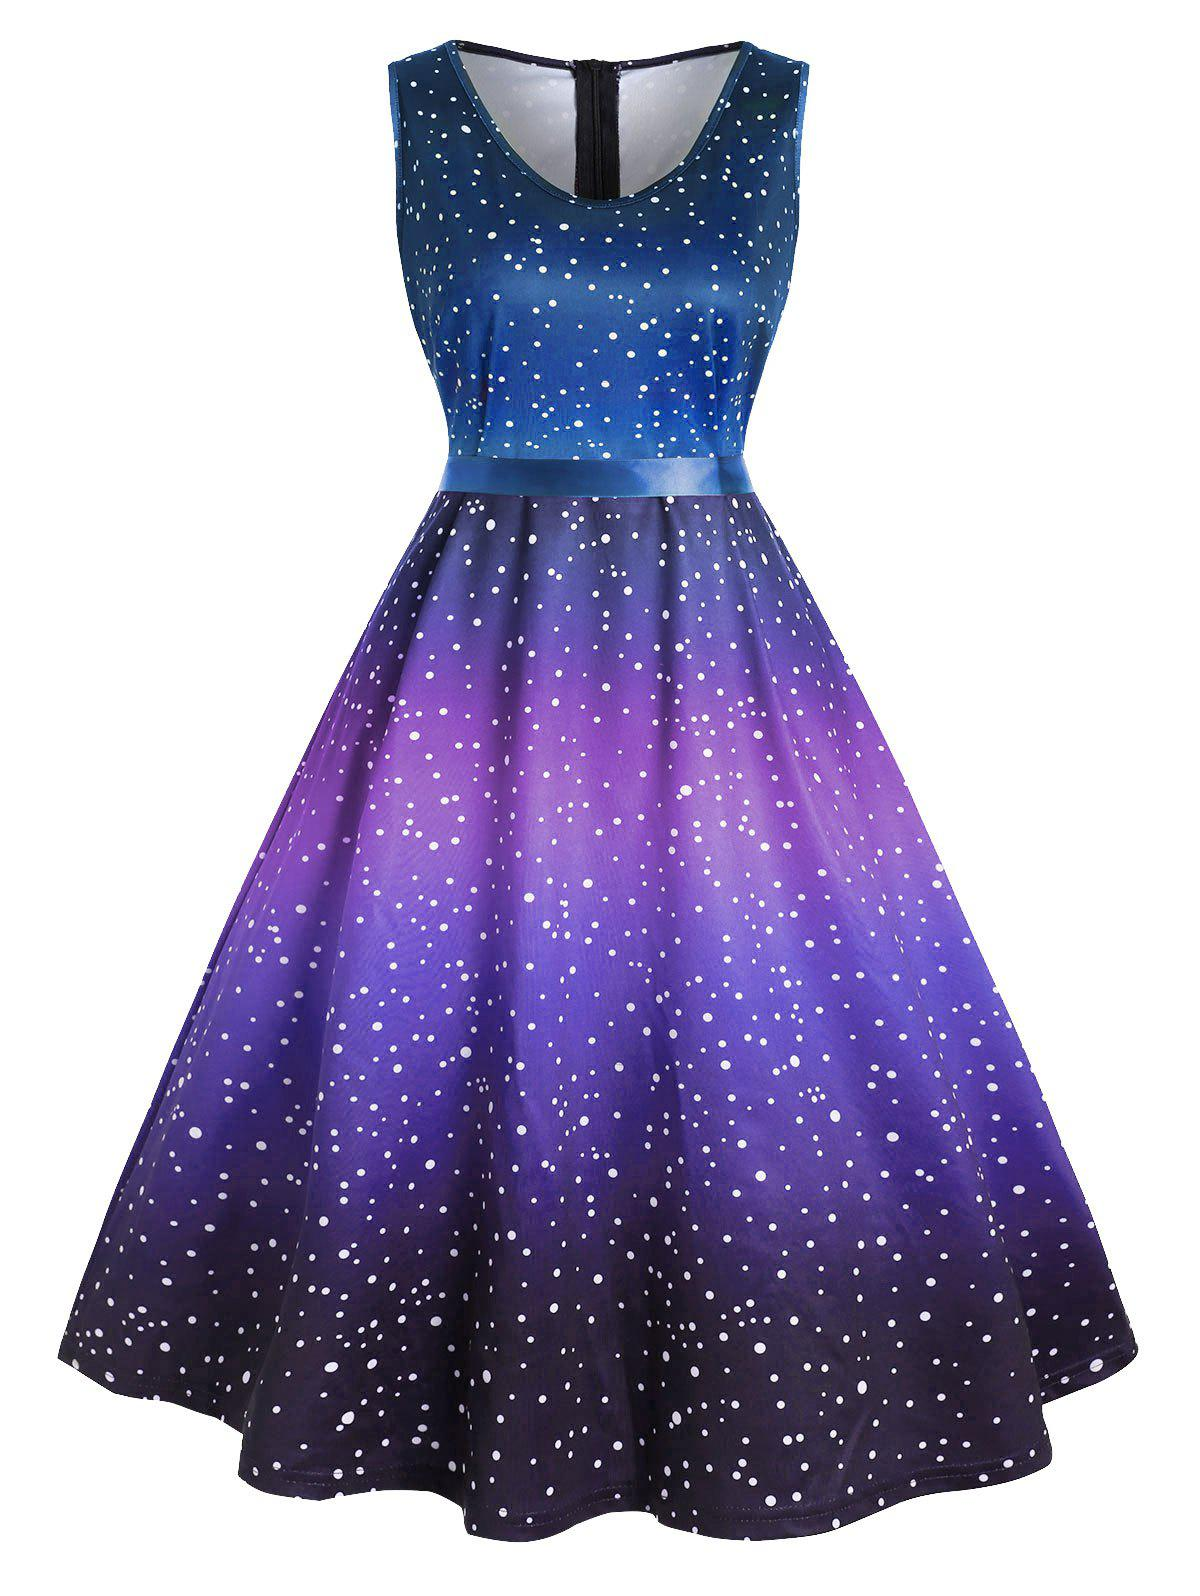 New Plus Size Vintage Polka Dot Ombre Swing Dress